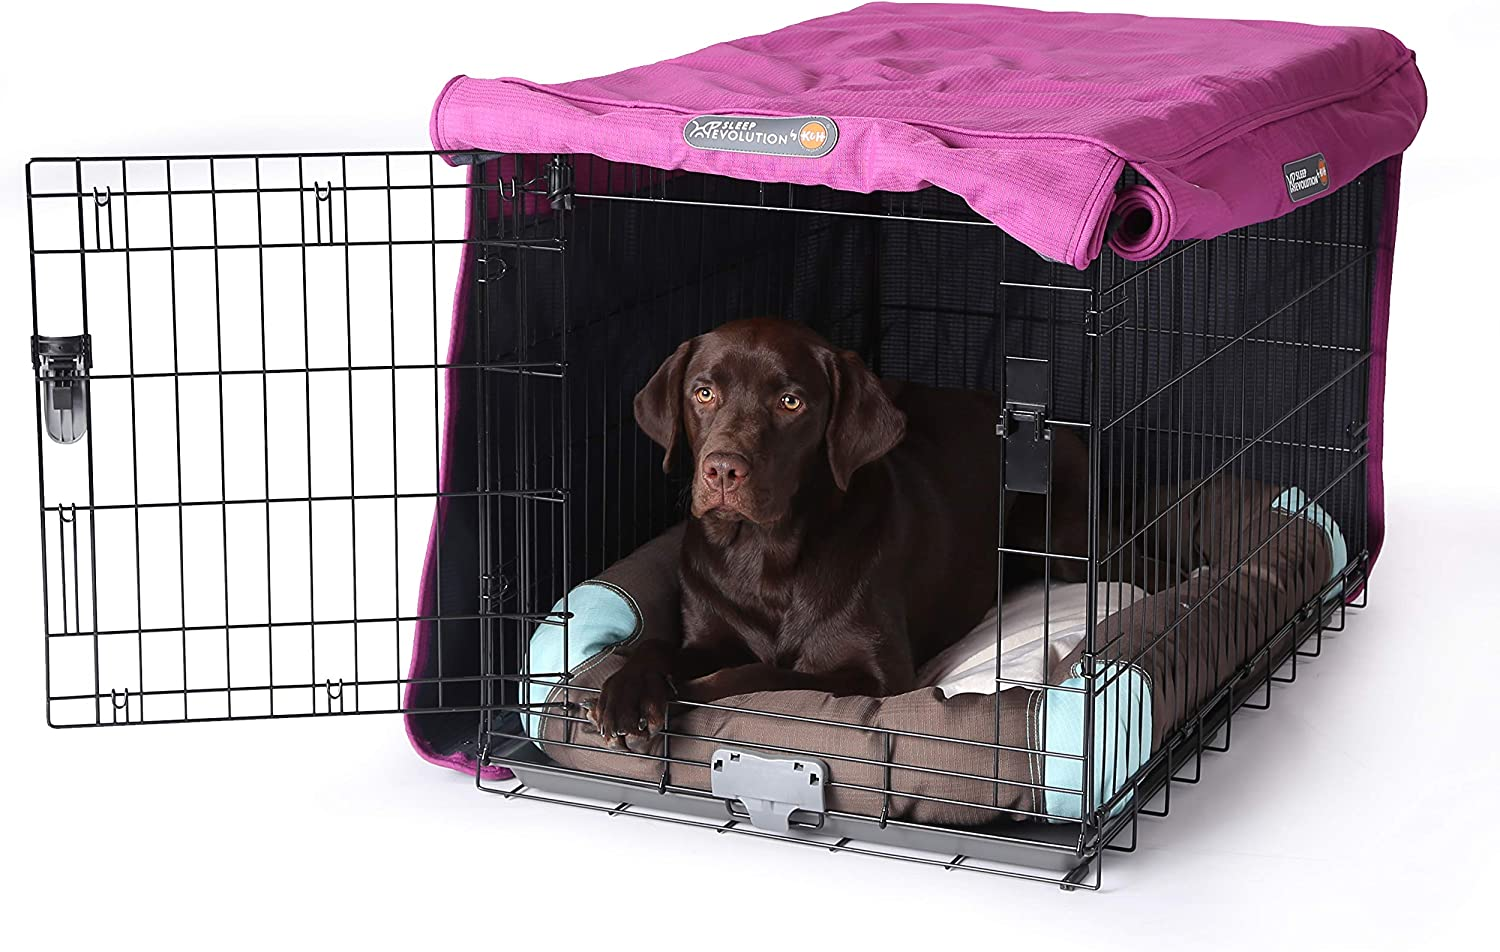 Tear Resistant Dog Kennel Covers Pet Progressions by K/&H Dog Crate Cover